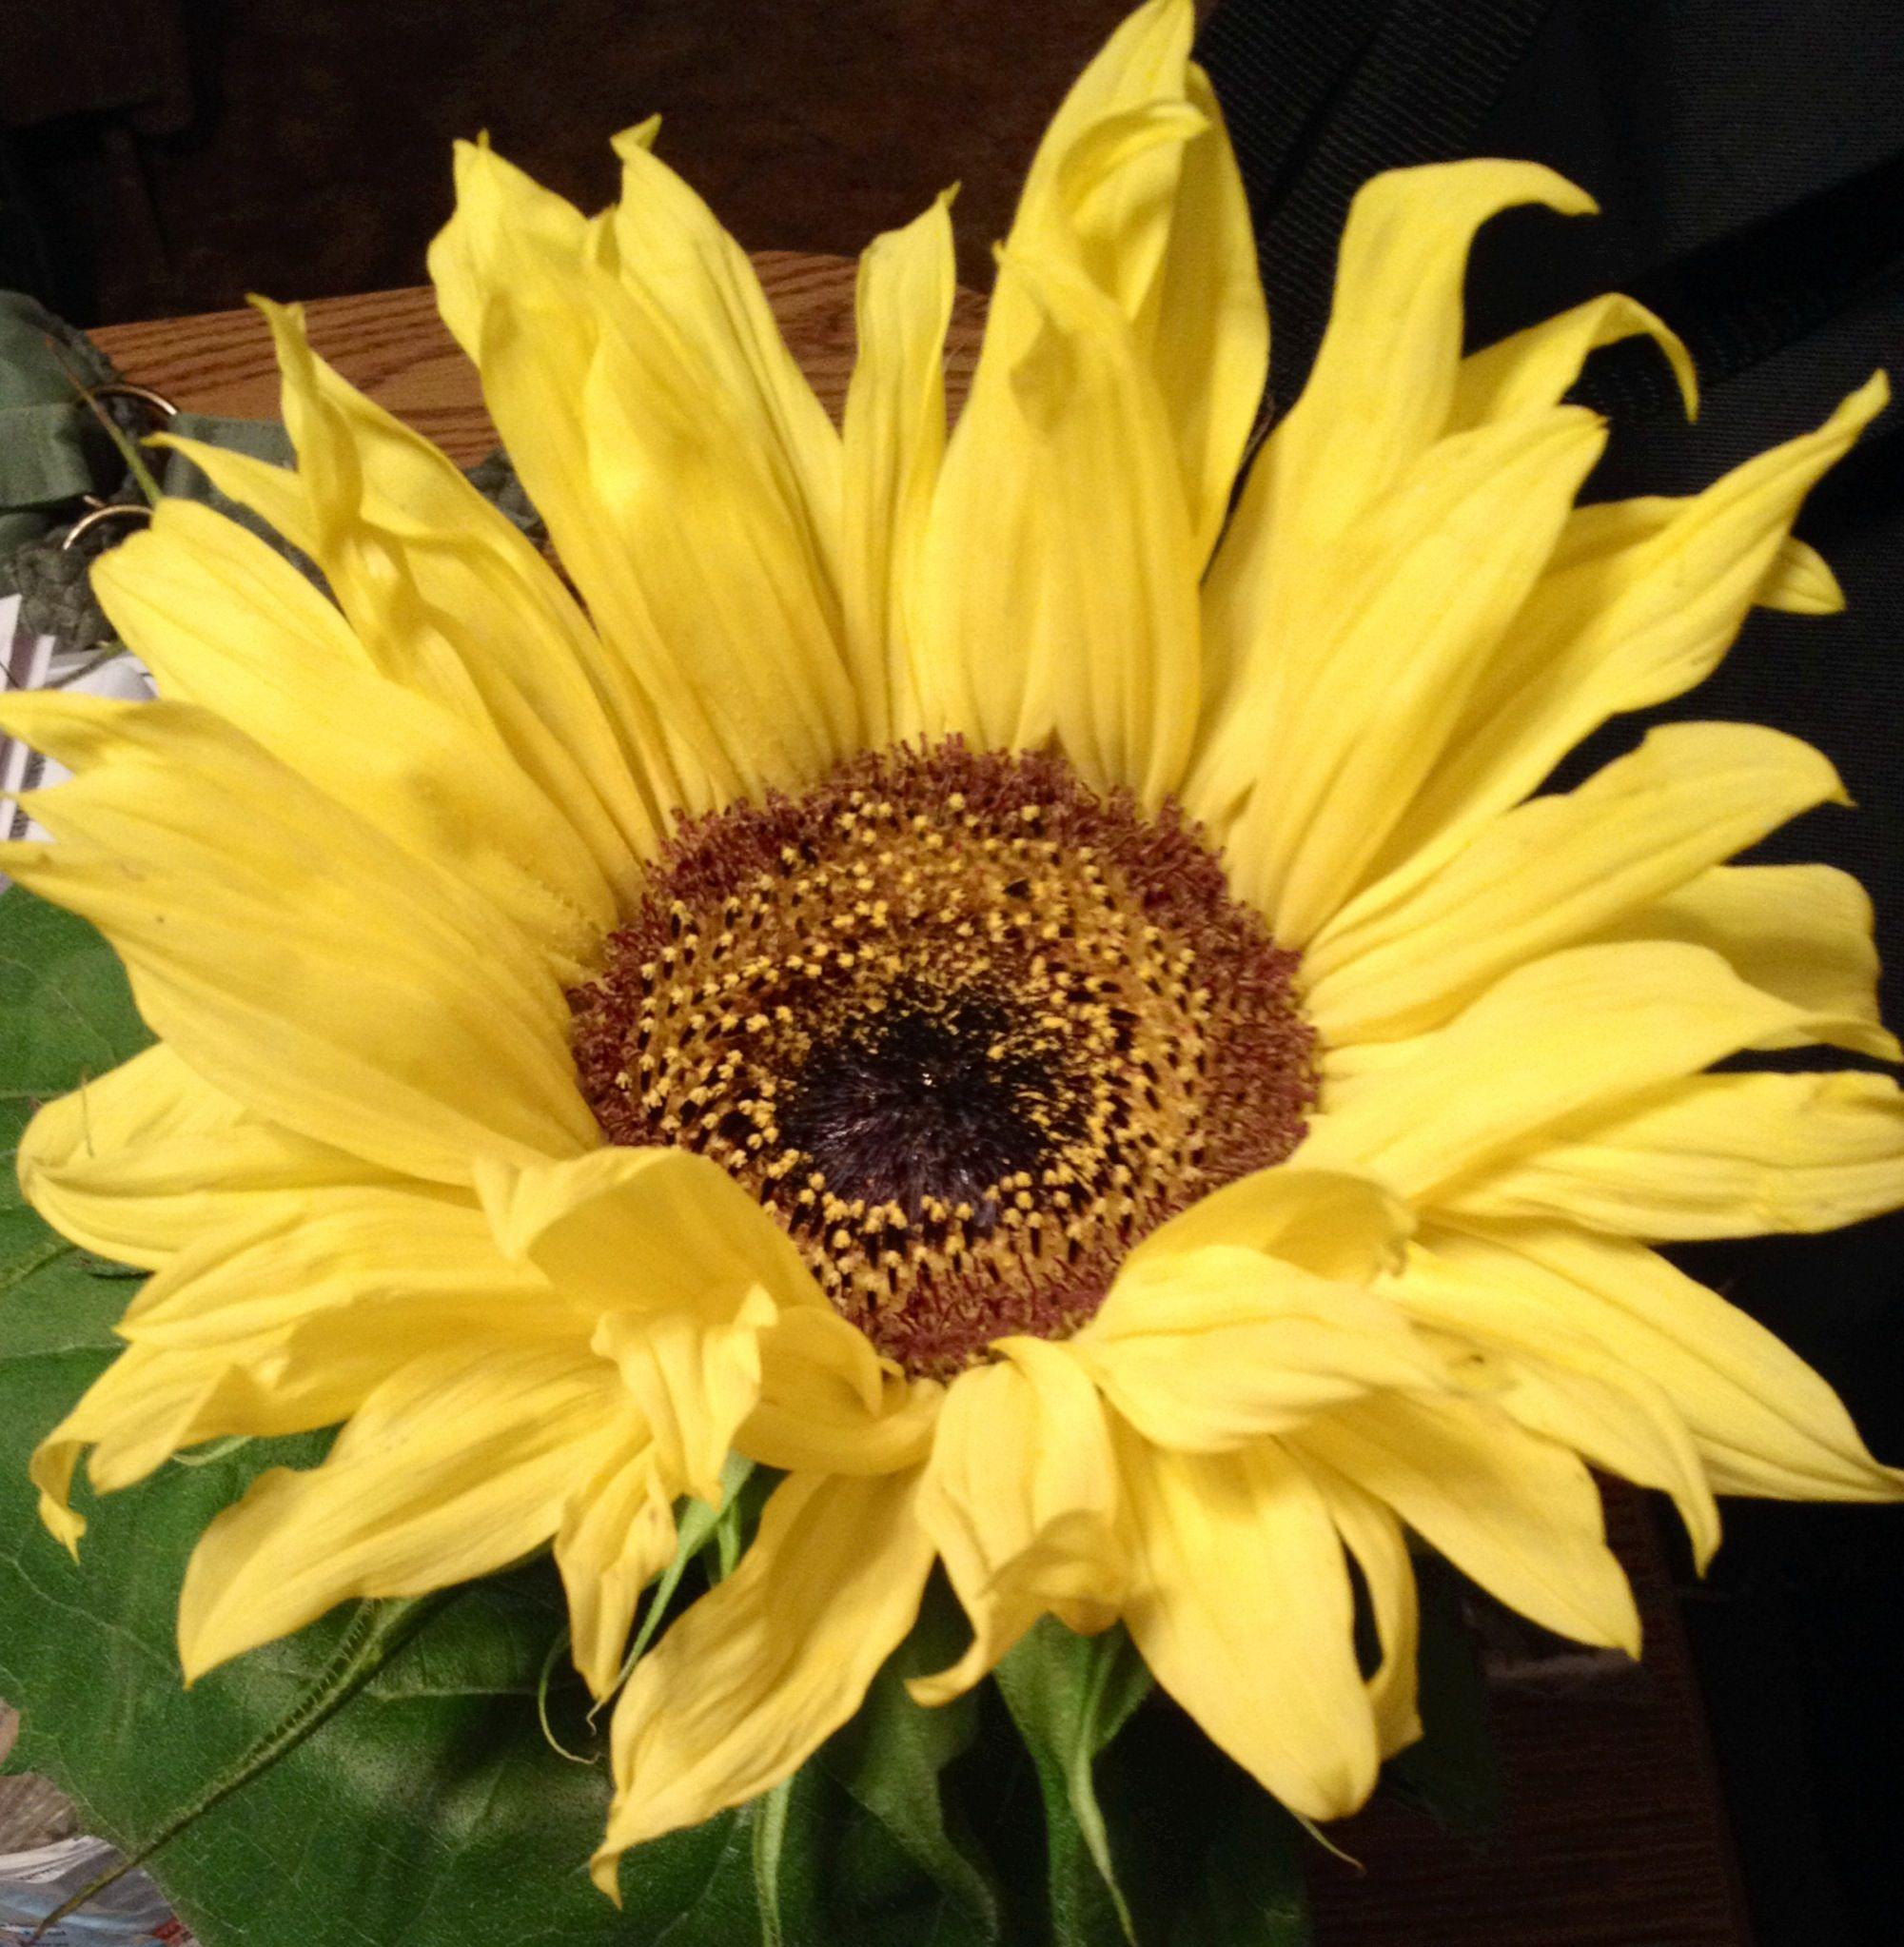 Most Beautiful Plants For Bedroom: The Most Beautiful Sunflower I Have Ever Seen!!